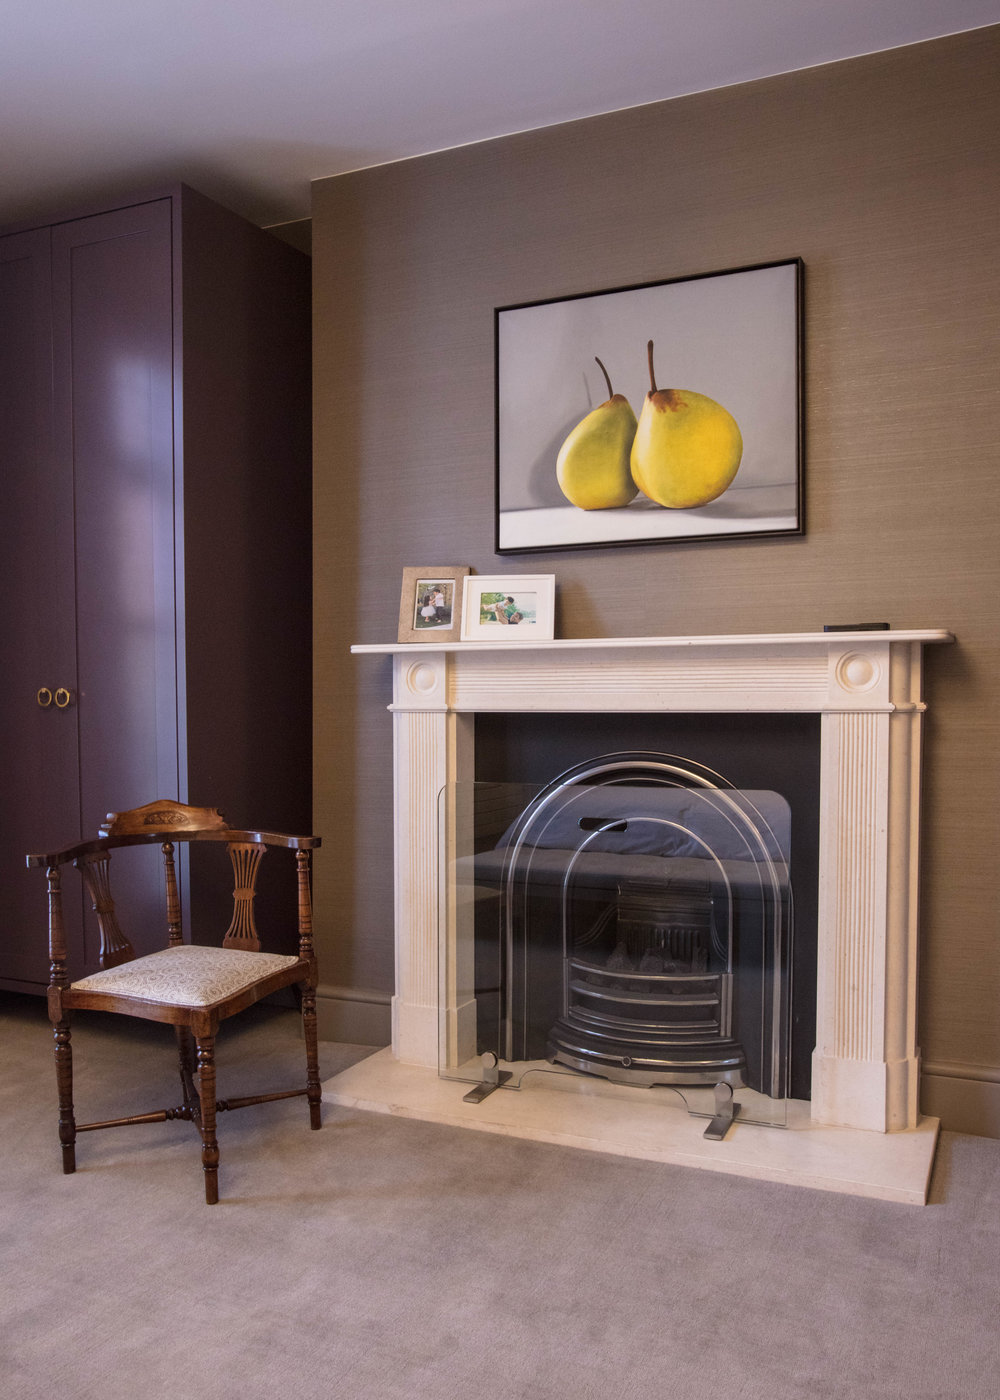 17 Park Walk - MBR Fireplace.jpg